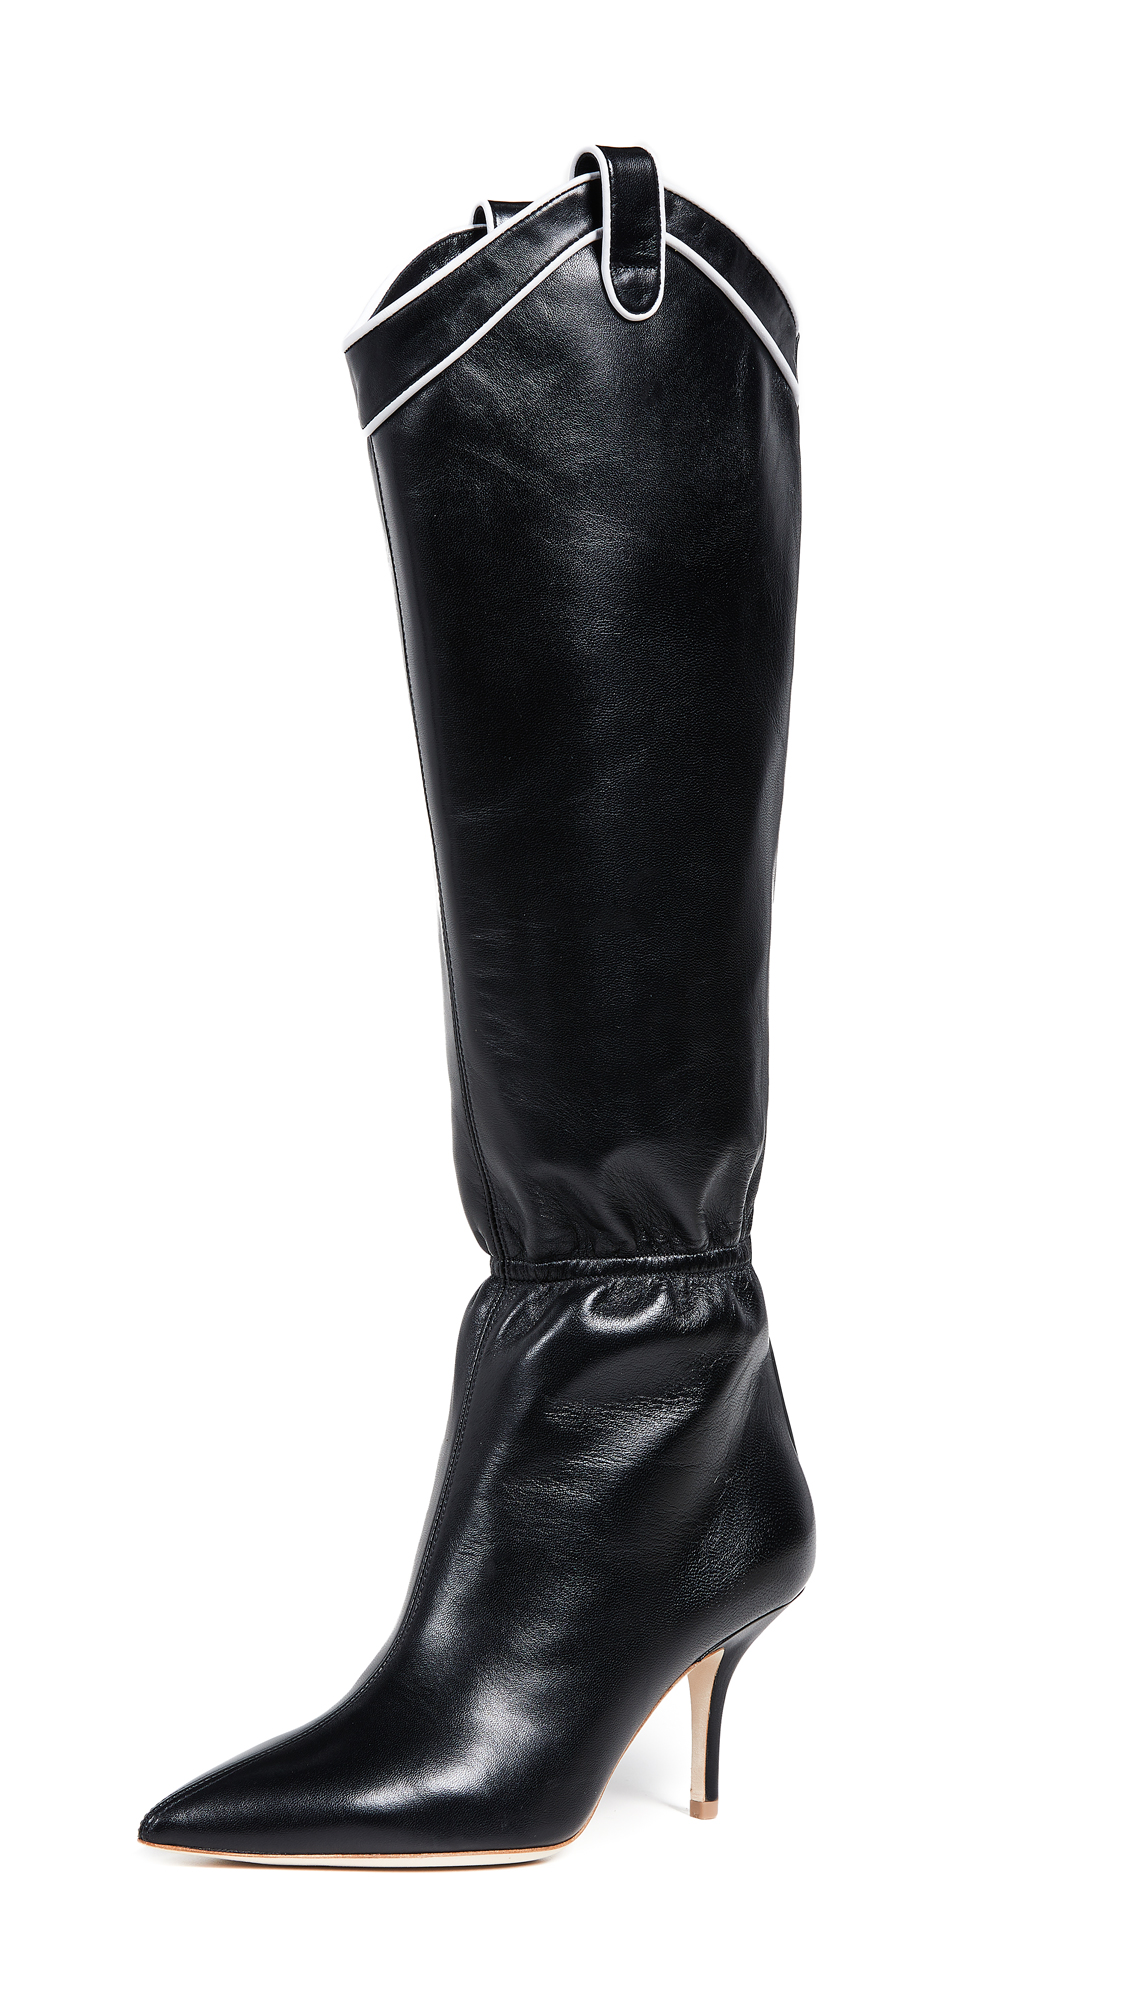 Malone Souliers Daisy Tall Boots - Black/White